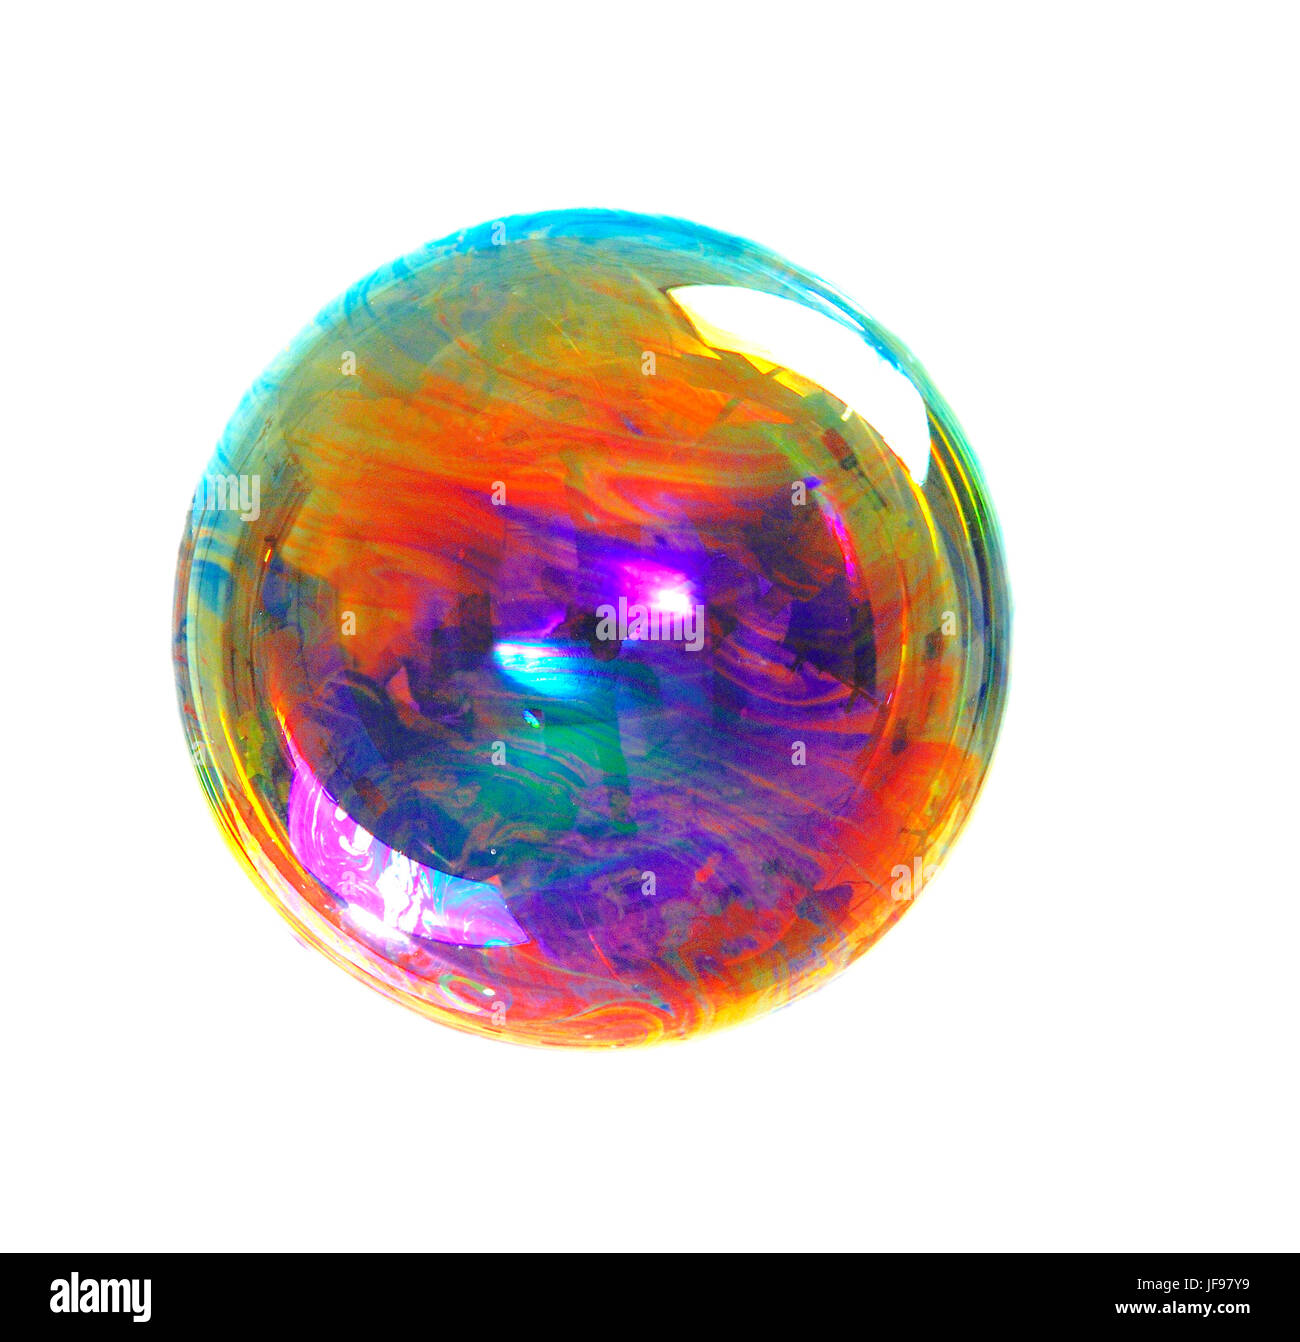 a soap bubble with many colors, colors contrast, color image - Stock Image